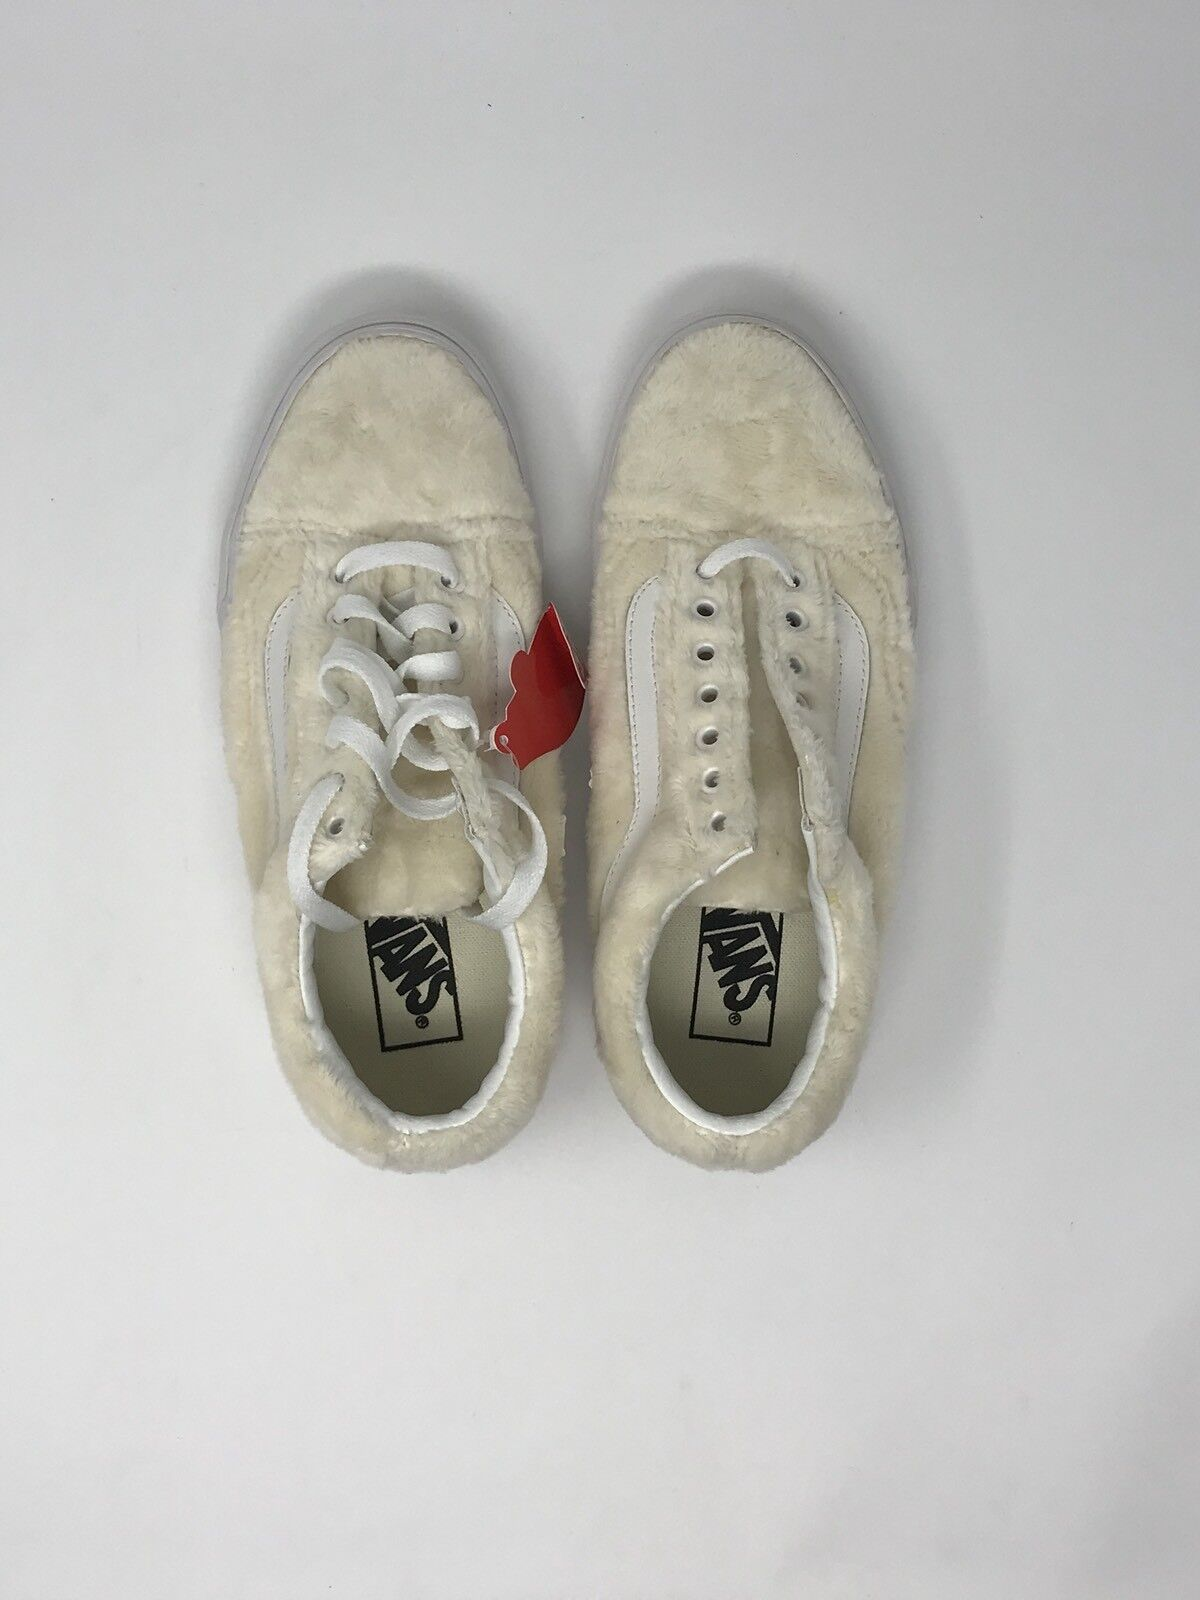 d796008ae4b553 VANS Old Skool Sherpa Turtledove Women s Skate Shoes Size 8.5 for ...